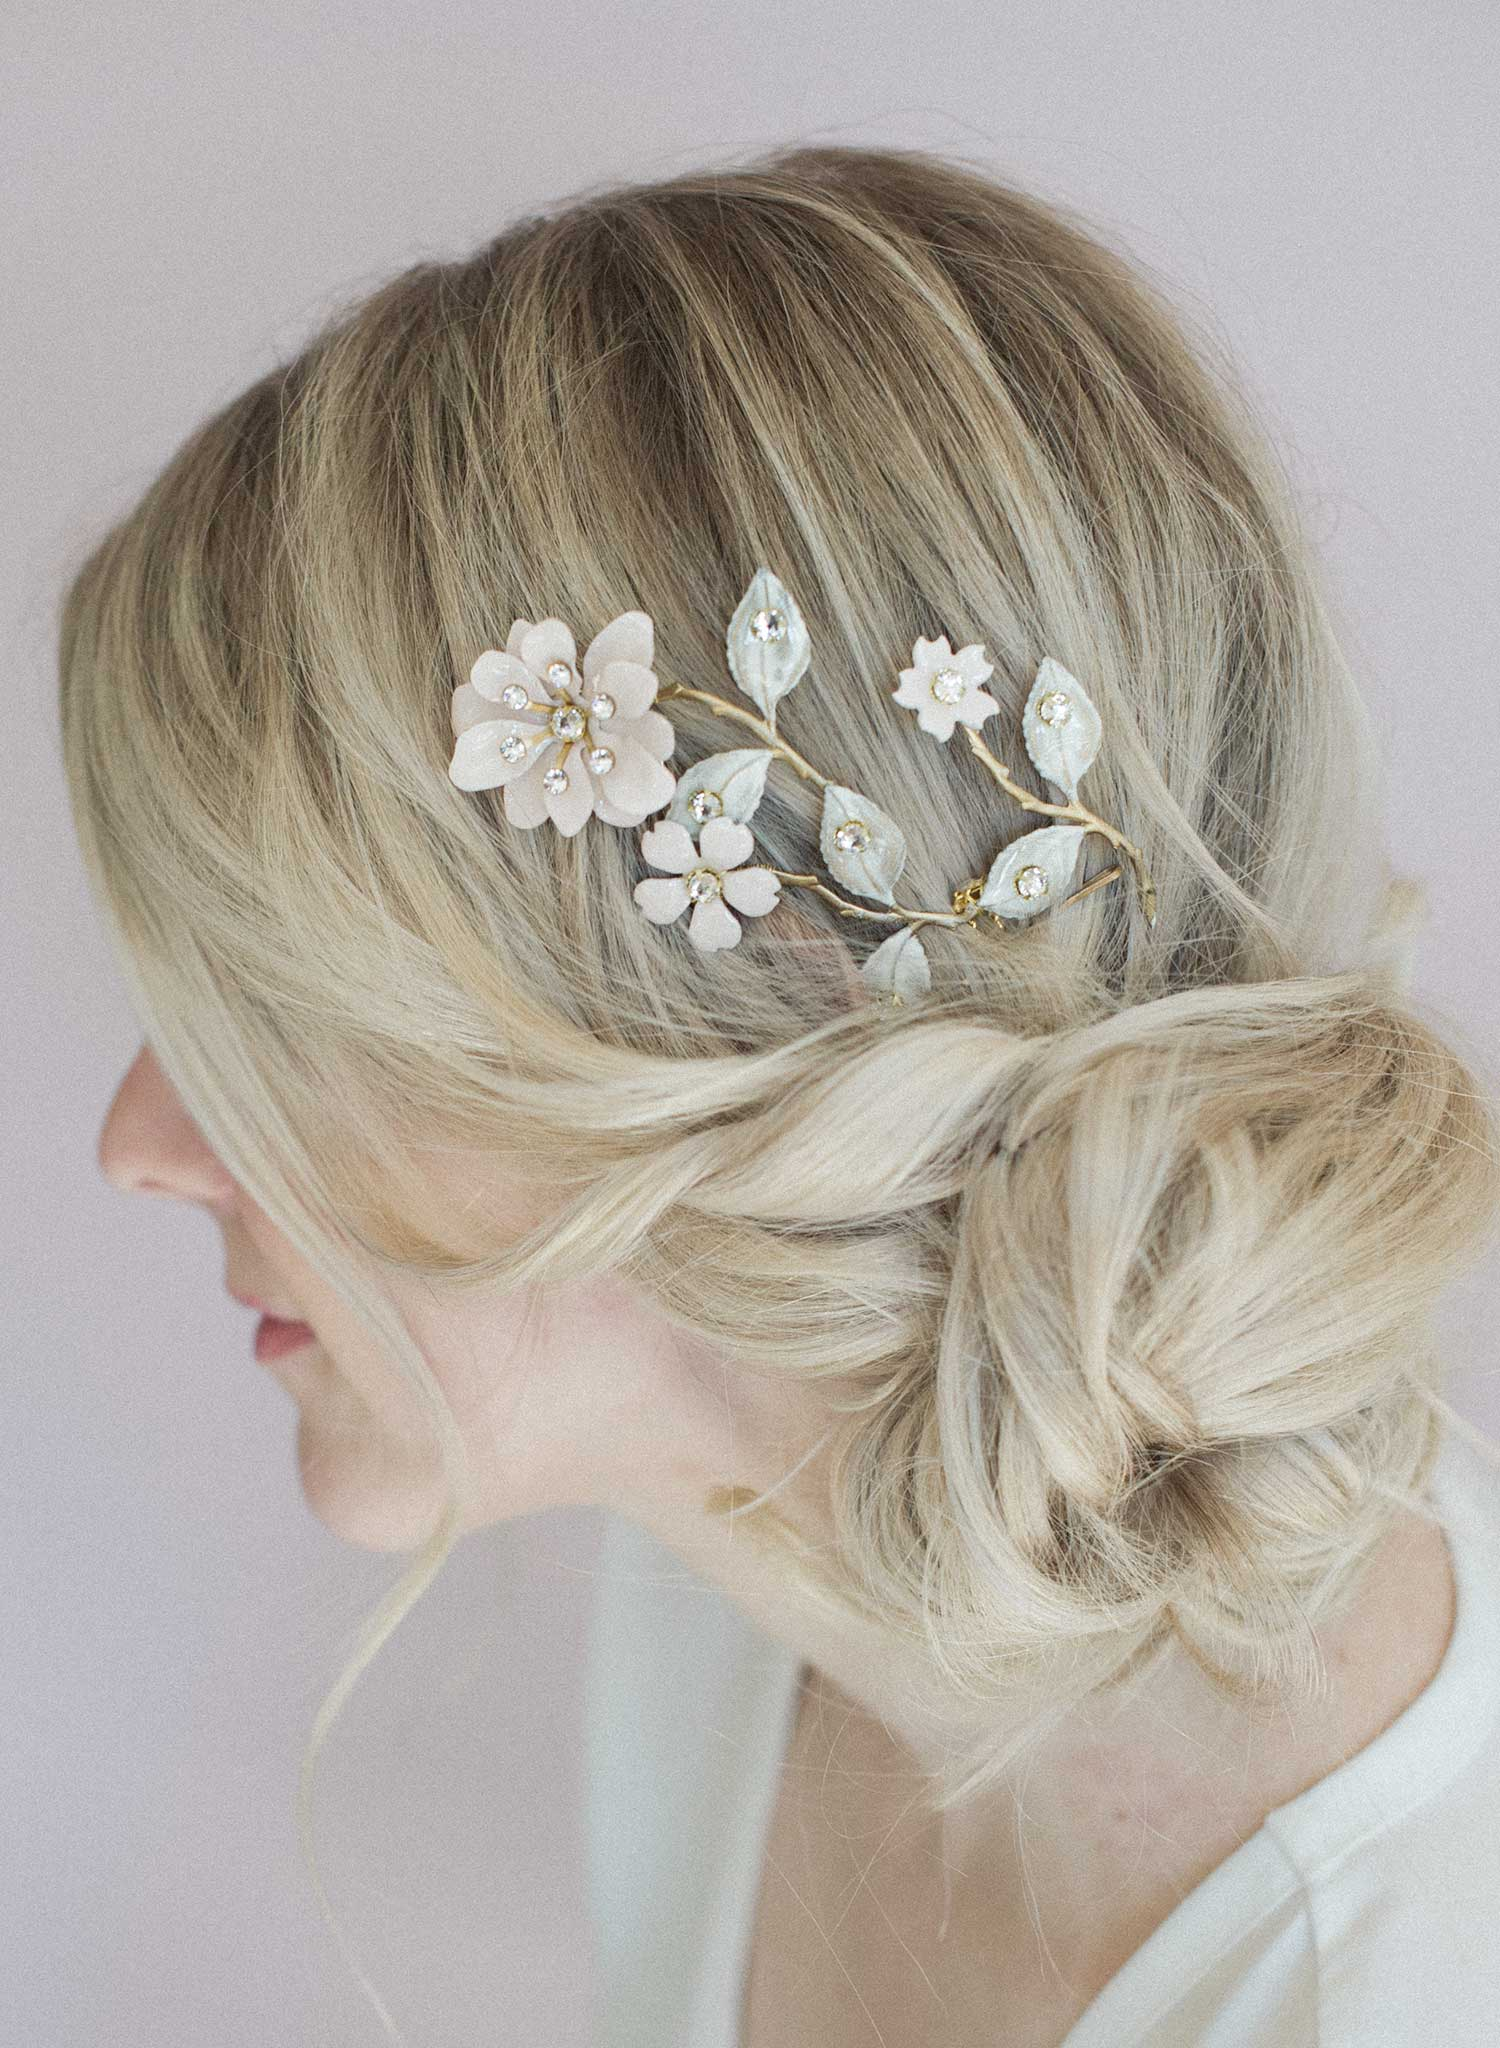 Blushing blossom branch headpiece - Style #809